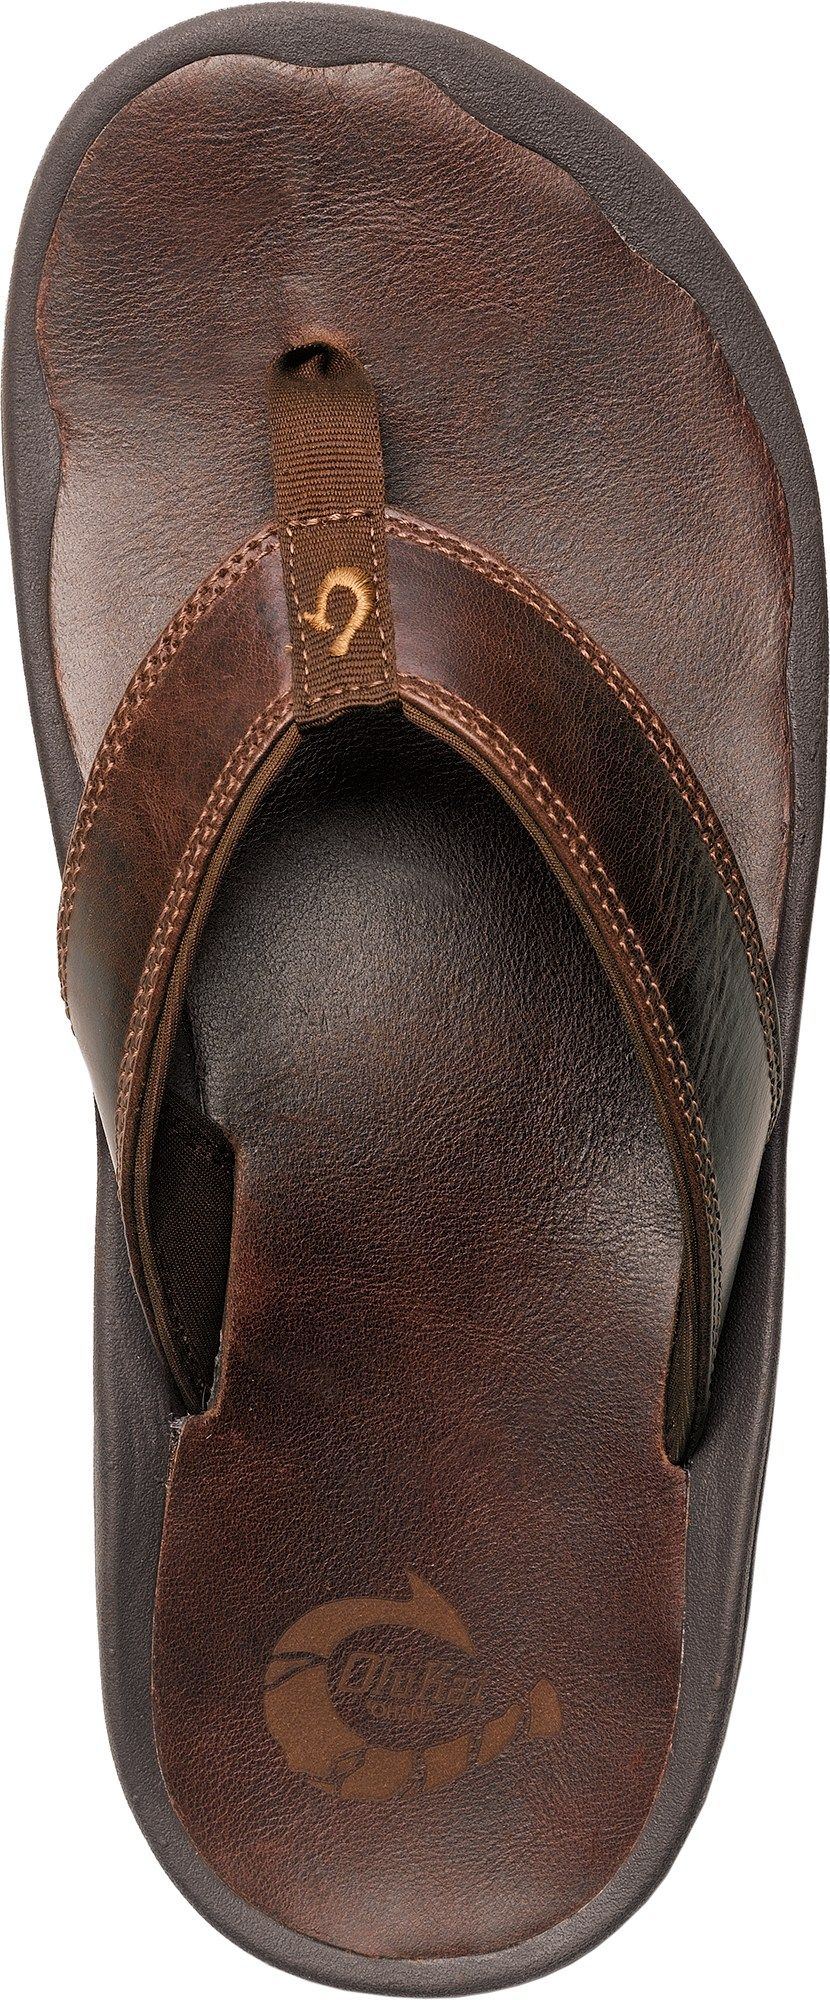 520cceceb67 OluKai  Ohana Leather Flip-Flops - Men s - Free Shipping at REI.com